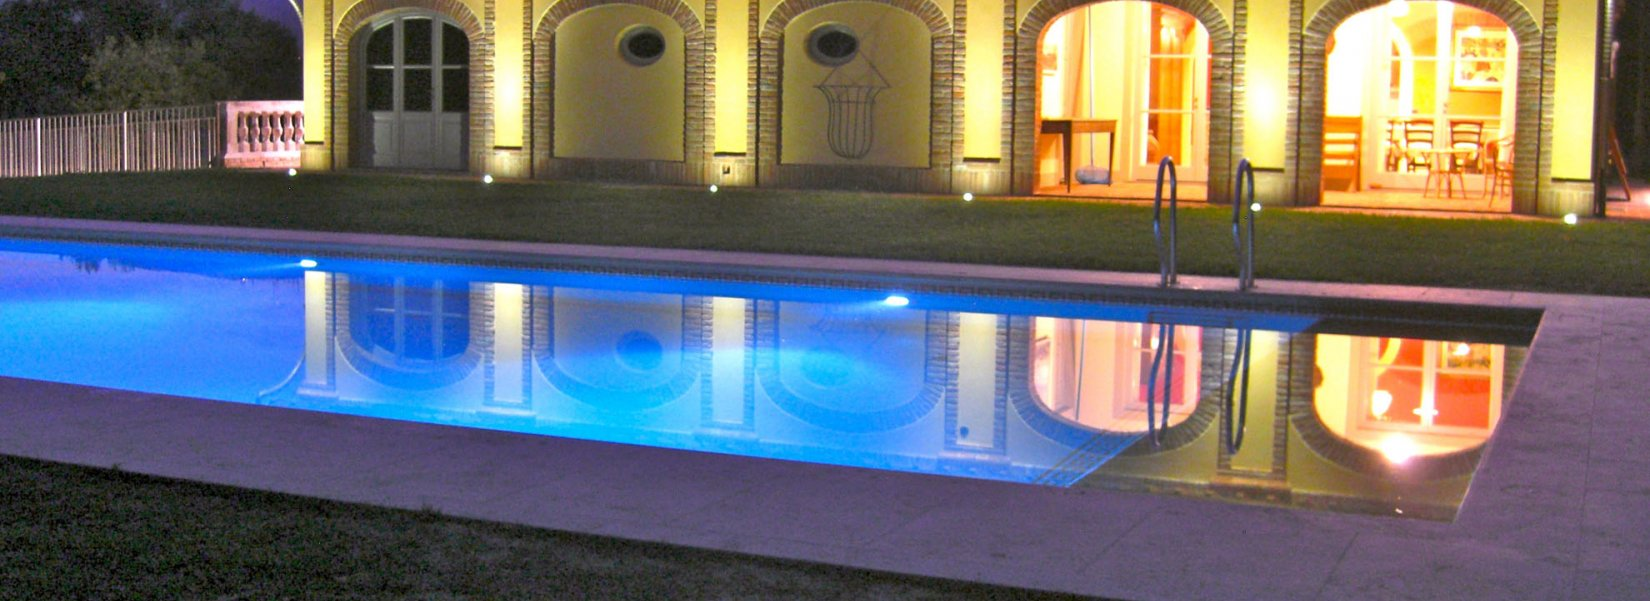 Swimming pool with water heating system